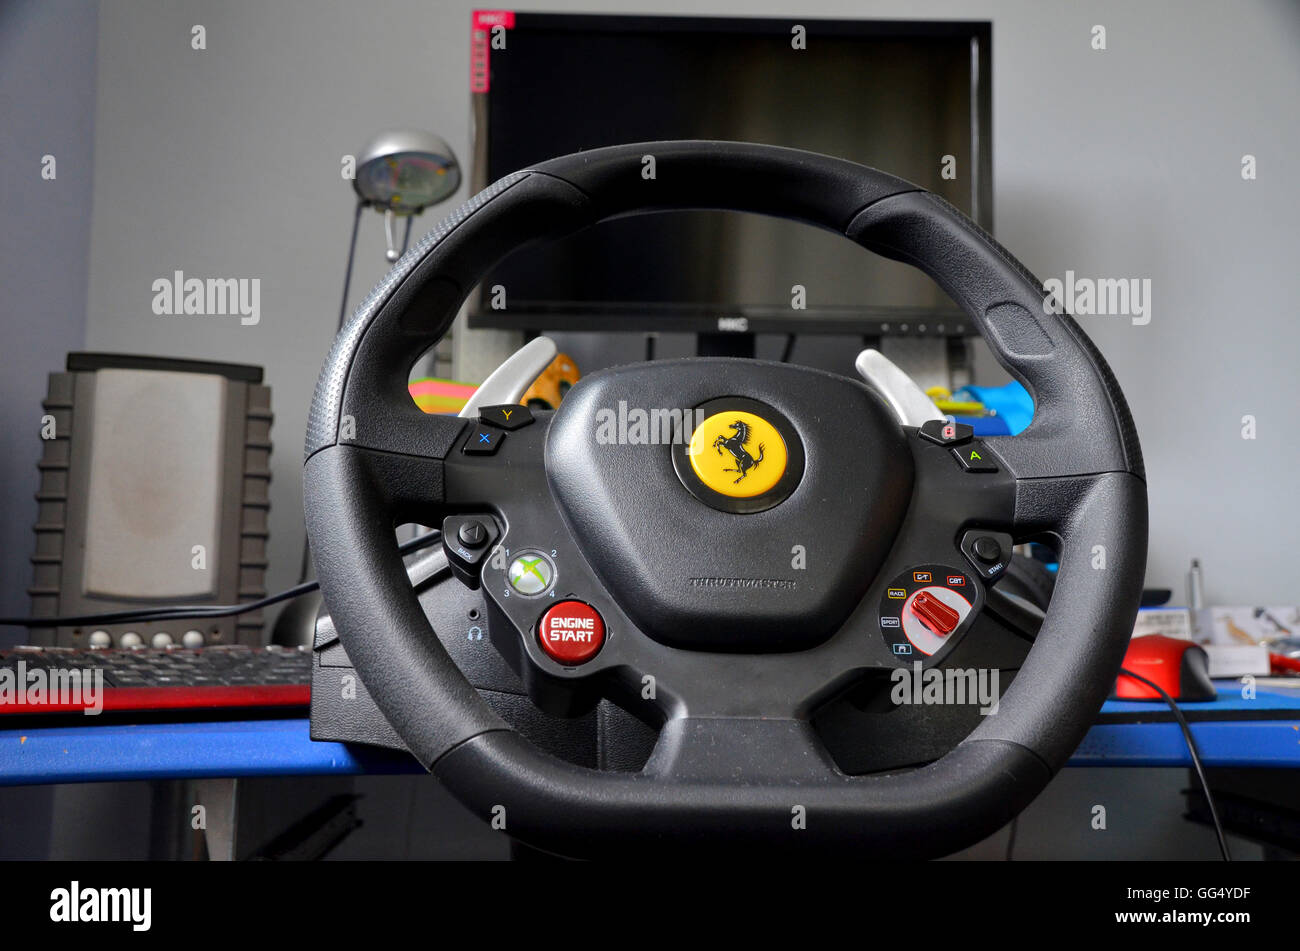 computer gaming rig - includes steering wheel assembled to desktop. monitor and speakers. - Stock Image